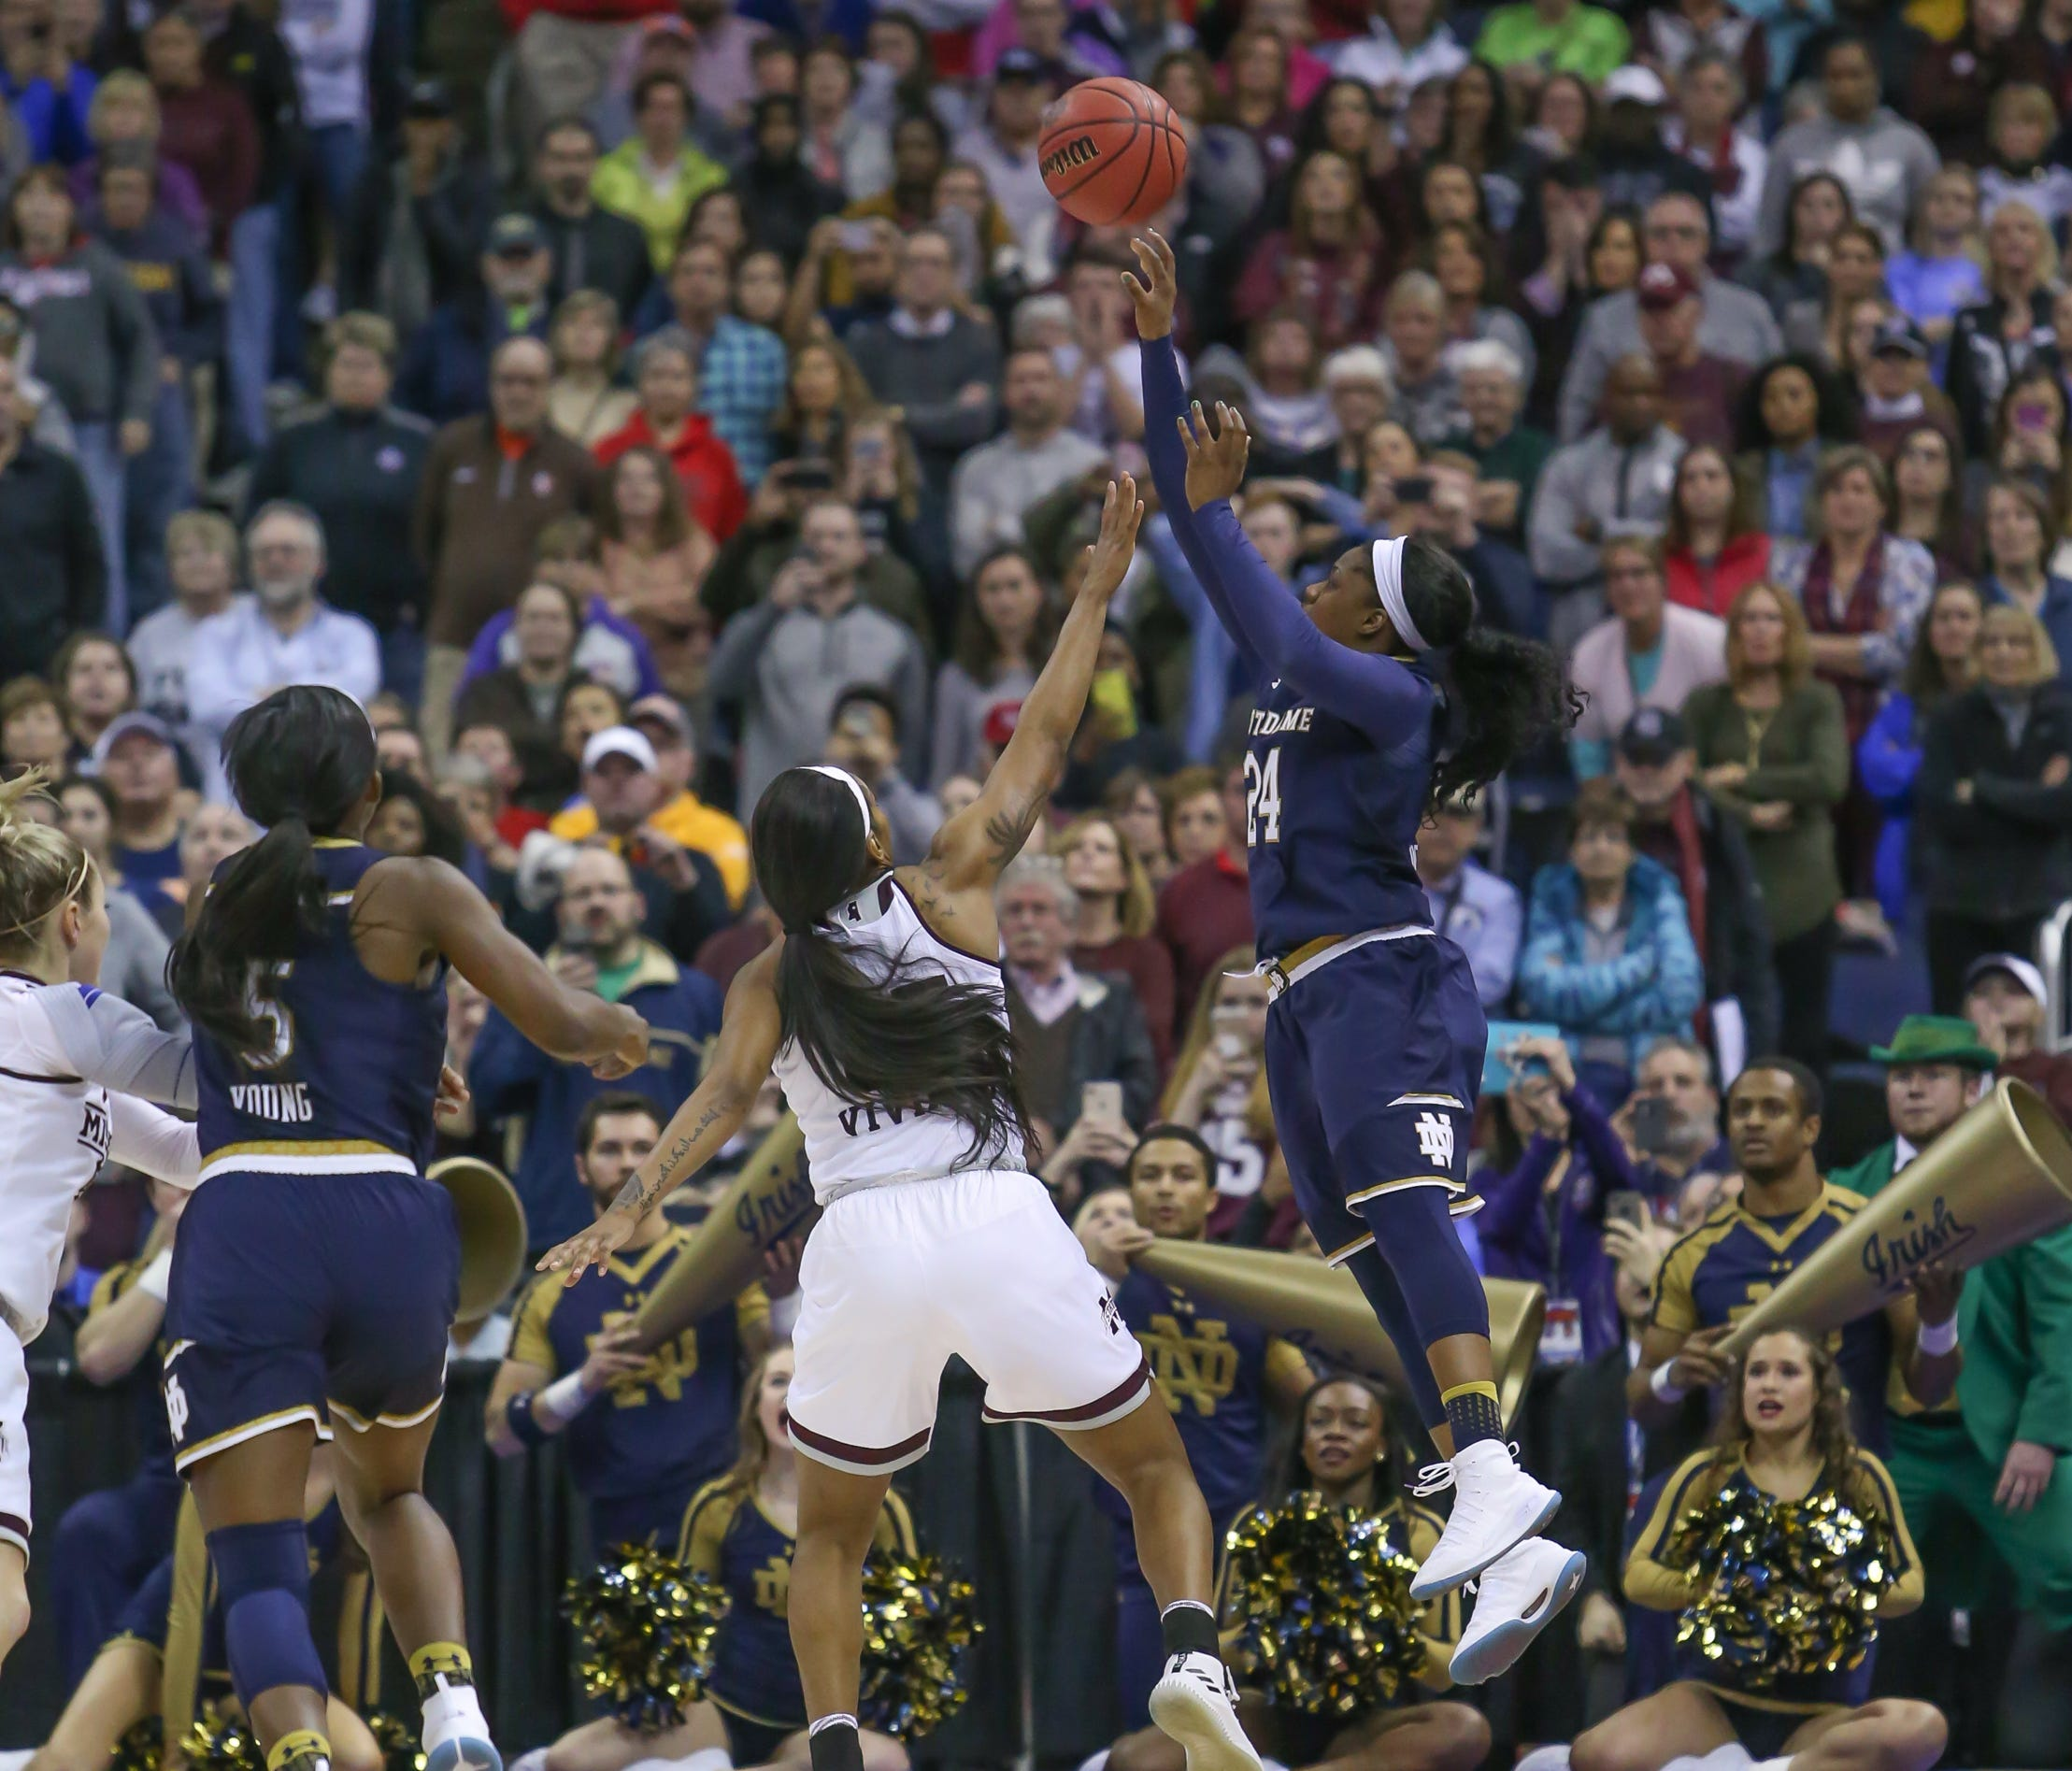 Notre Dame's Arike Ogunbowale (24) puts up a last-second shot to win the game for the Fighting Irish. Mississippi State played Notre Dame  in the NCAA Women's Basketball Championship in Columbus, Ohio, on Sunday, April 1, 2018.